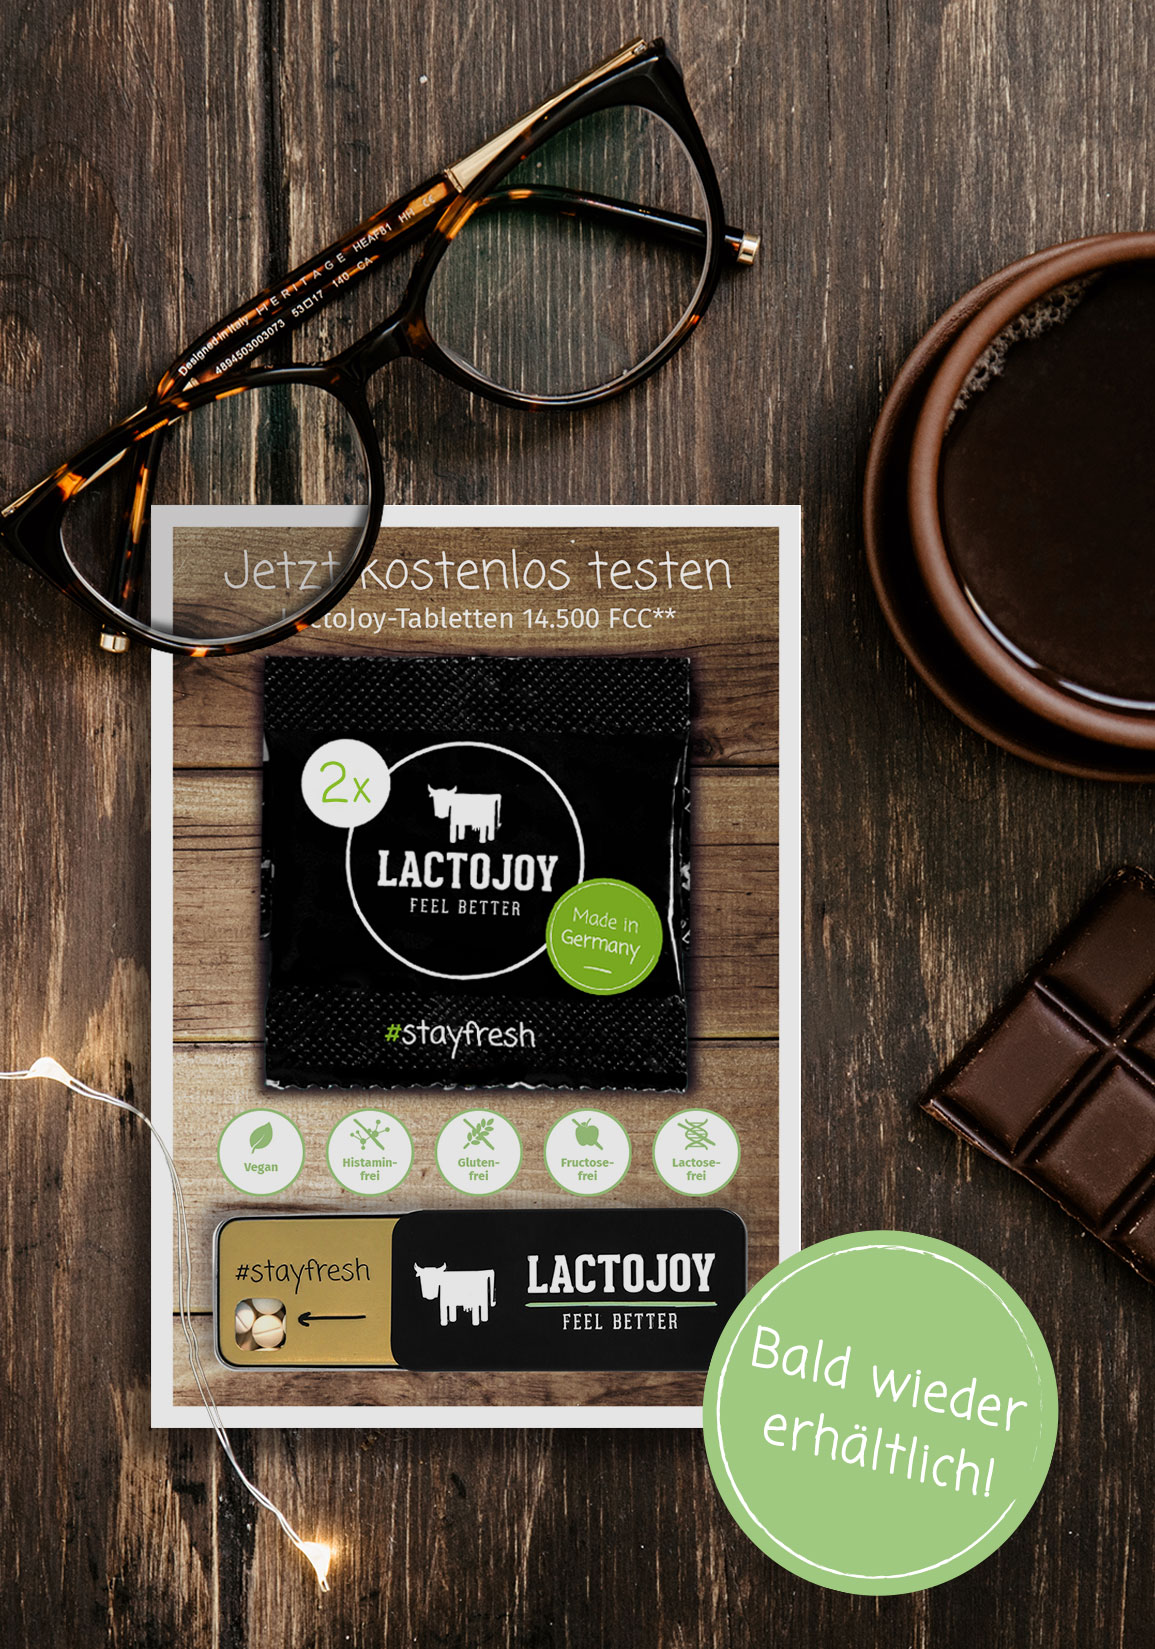 LactoJoy Test-tabletten